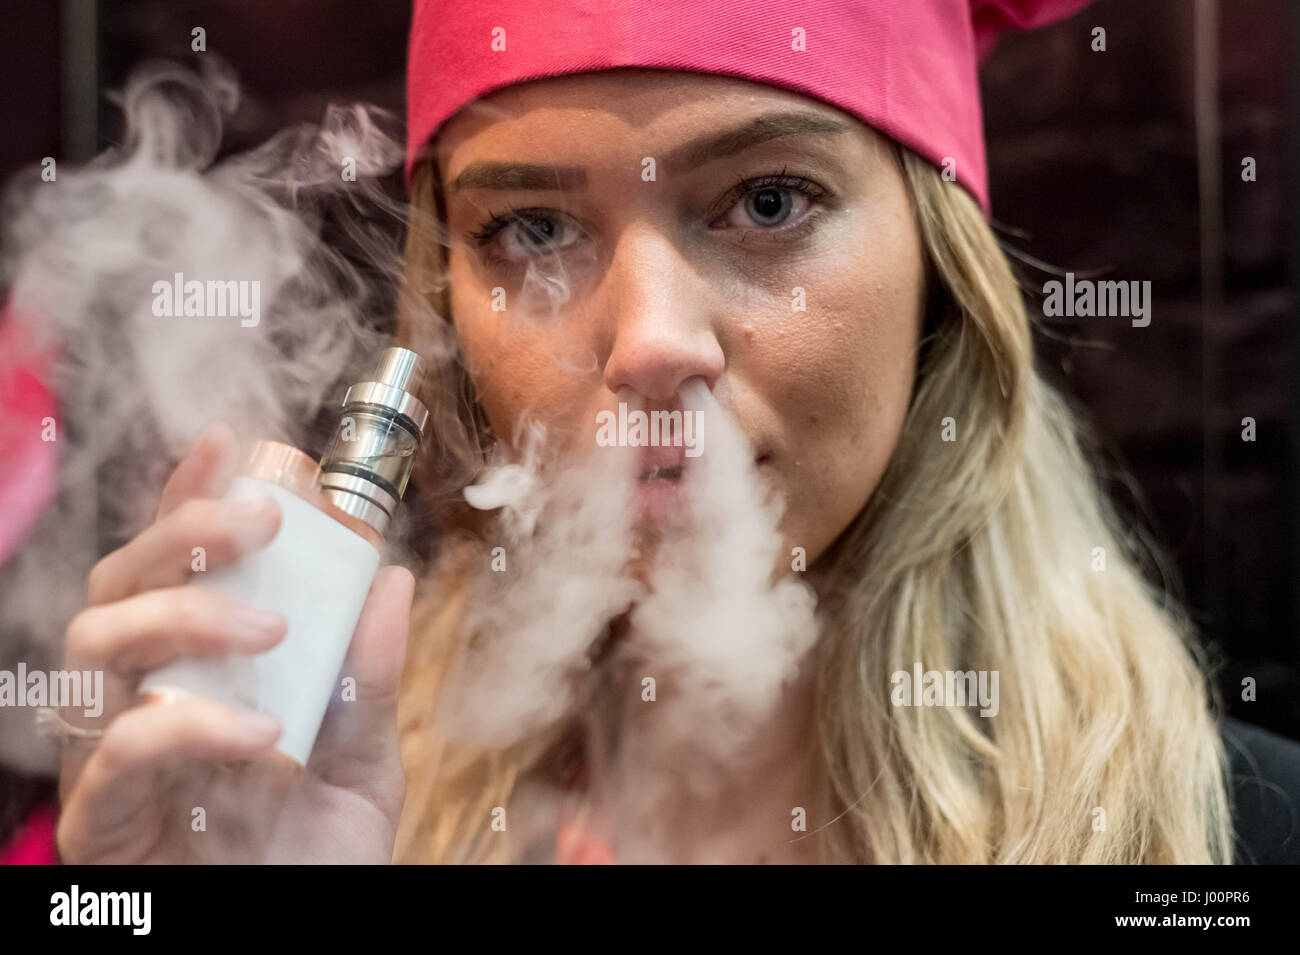 London, UK. 8th April, 2017. Vape Jam UK sees hundreds of vaping enthusiasts and electronic cigarette businesses - Stock Image